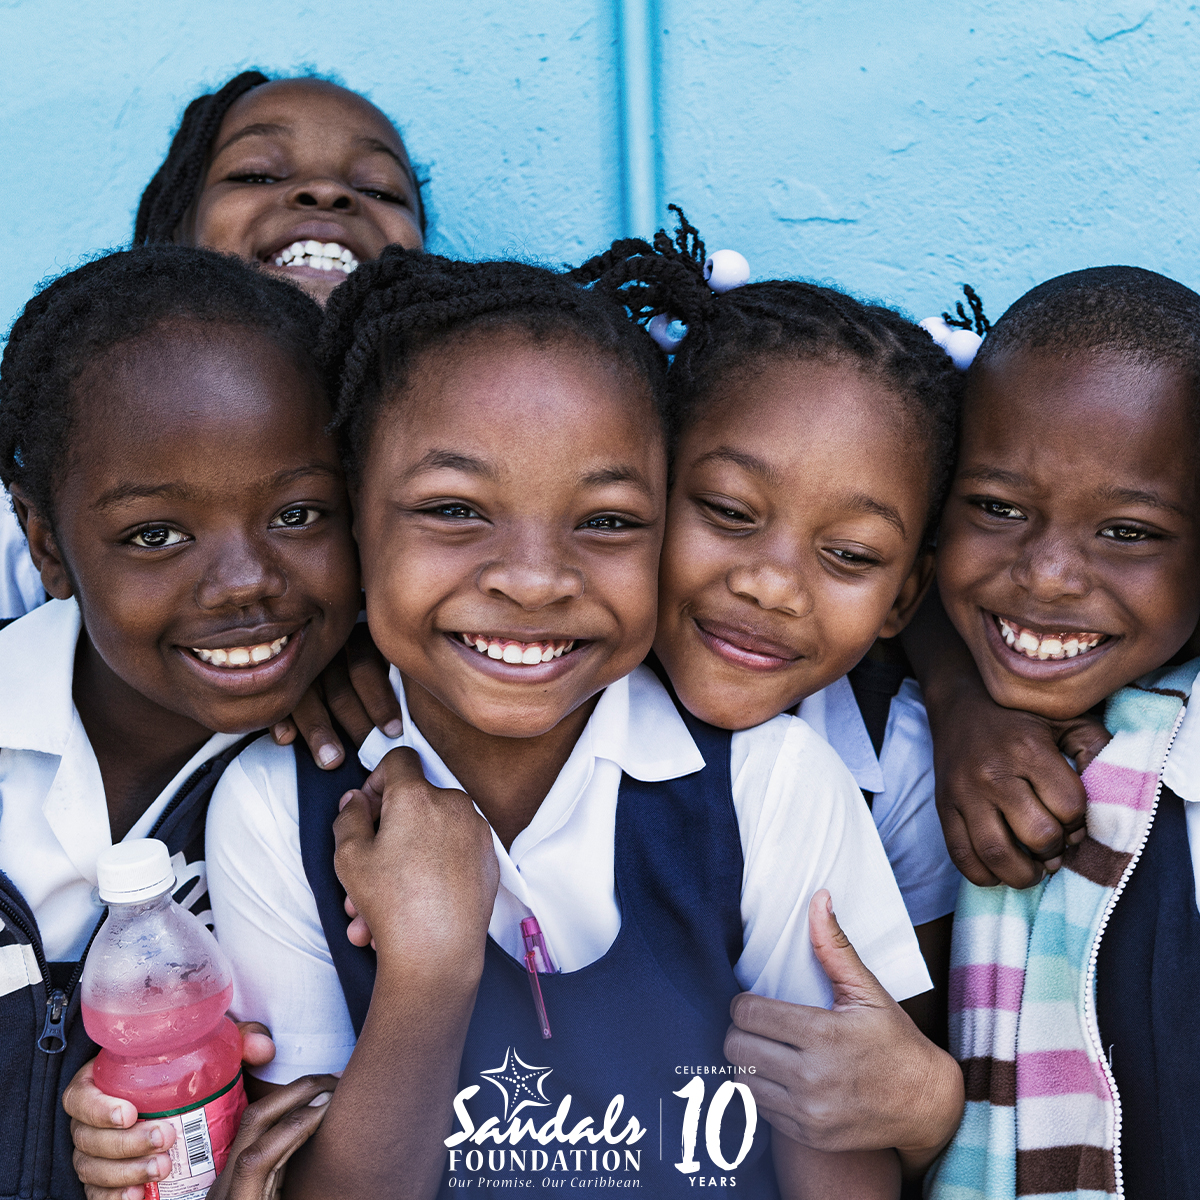 Happy 10th Anniversary Sandals Foundation